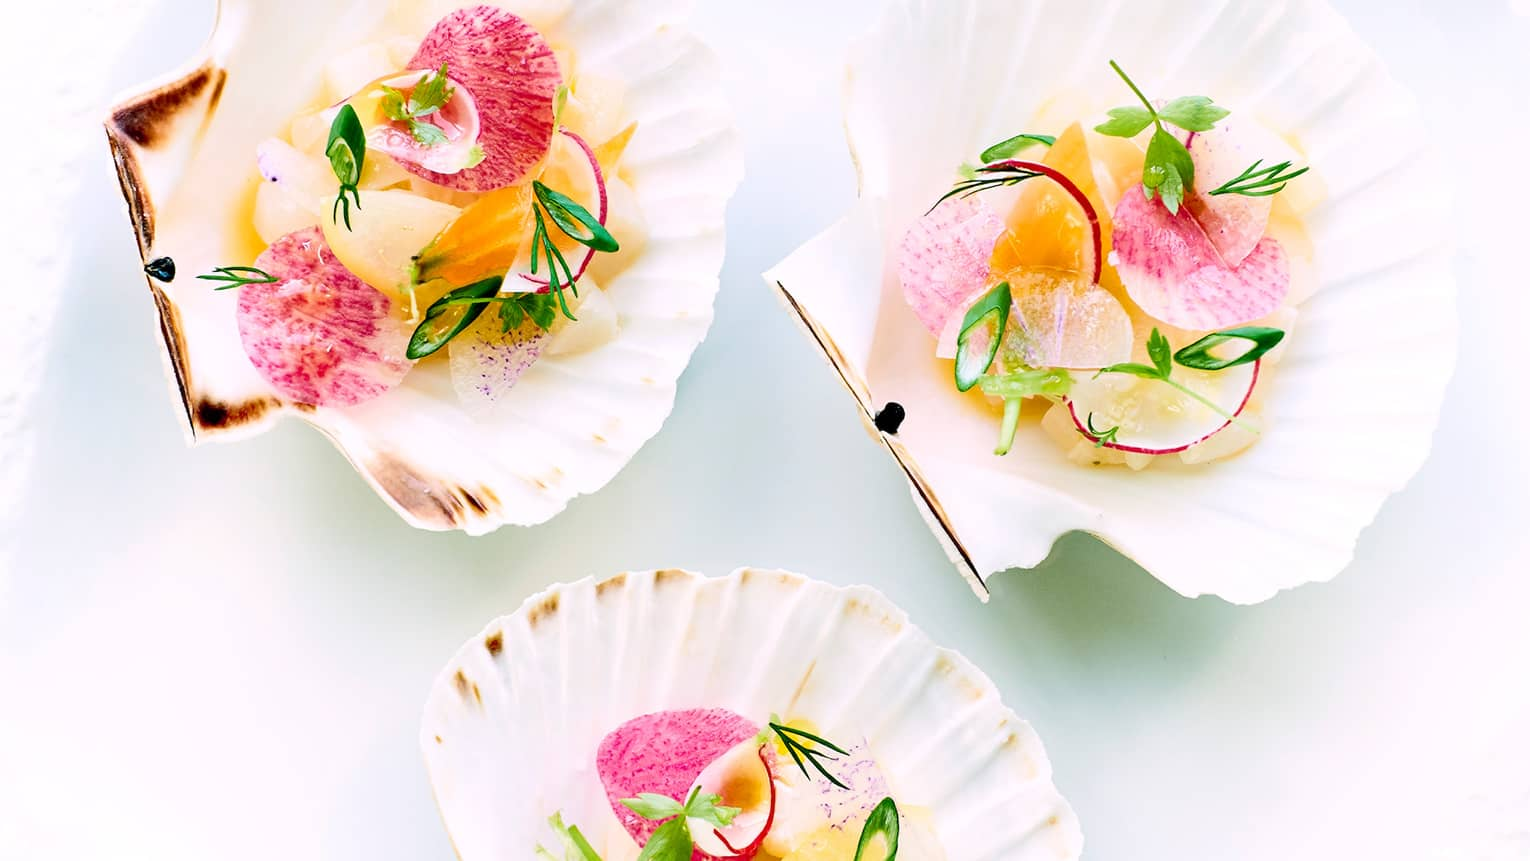 Scallop tartare with herbs plated on large seashells